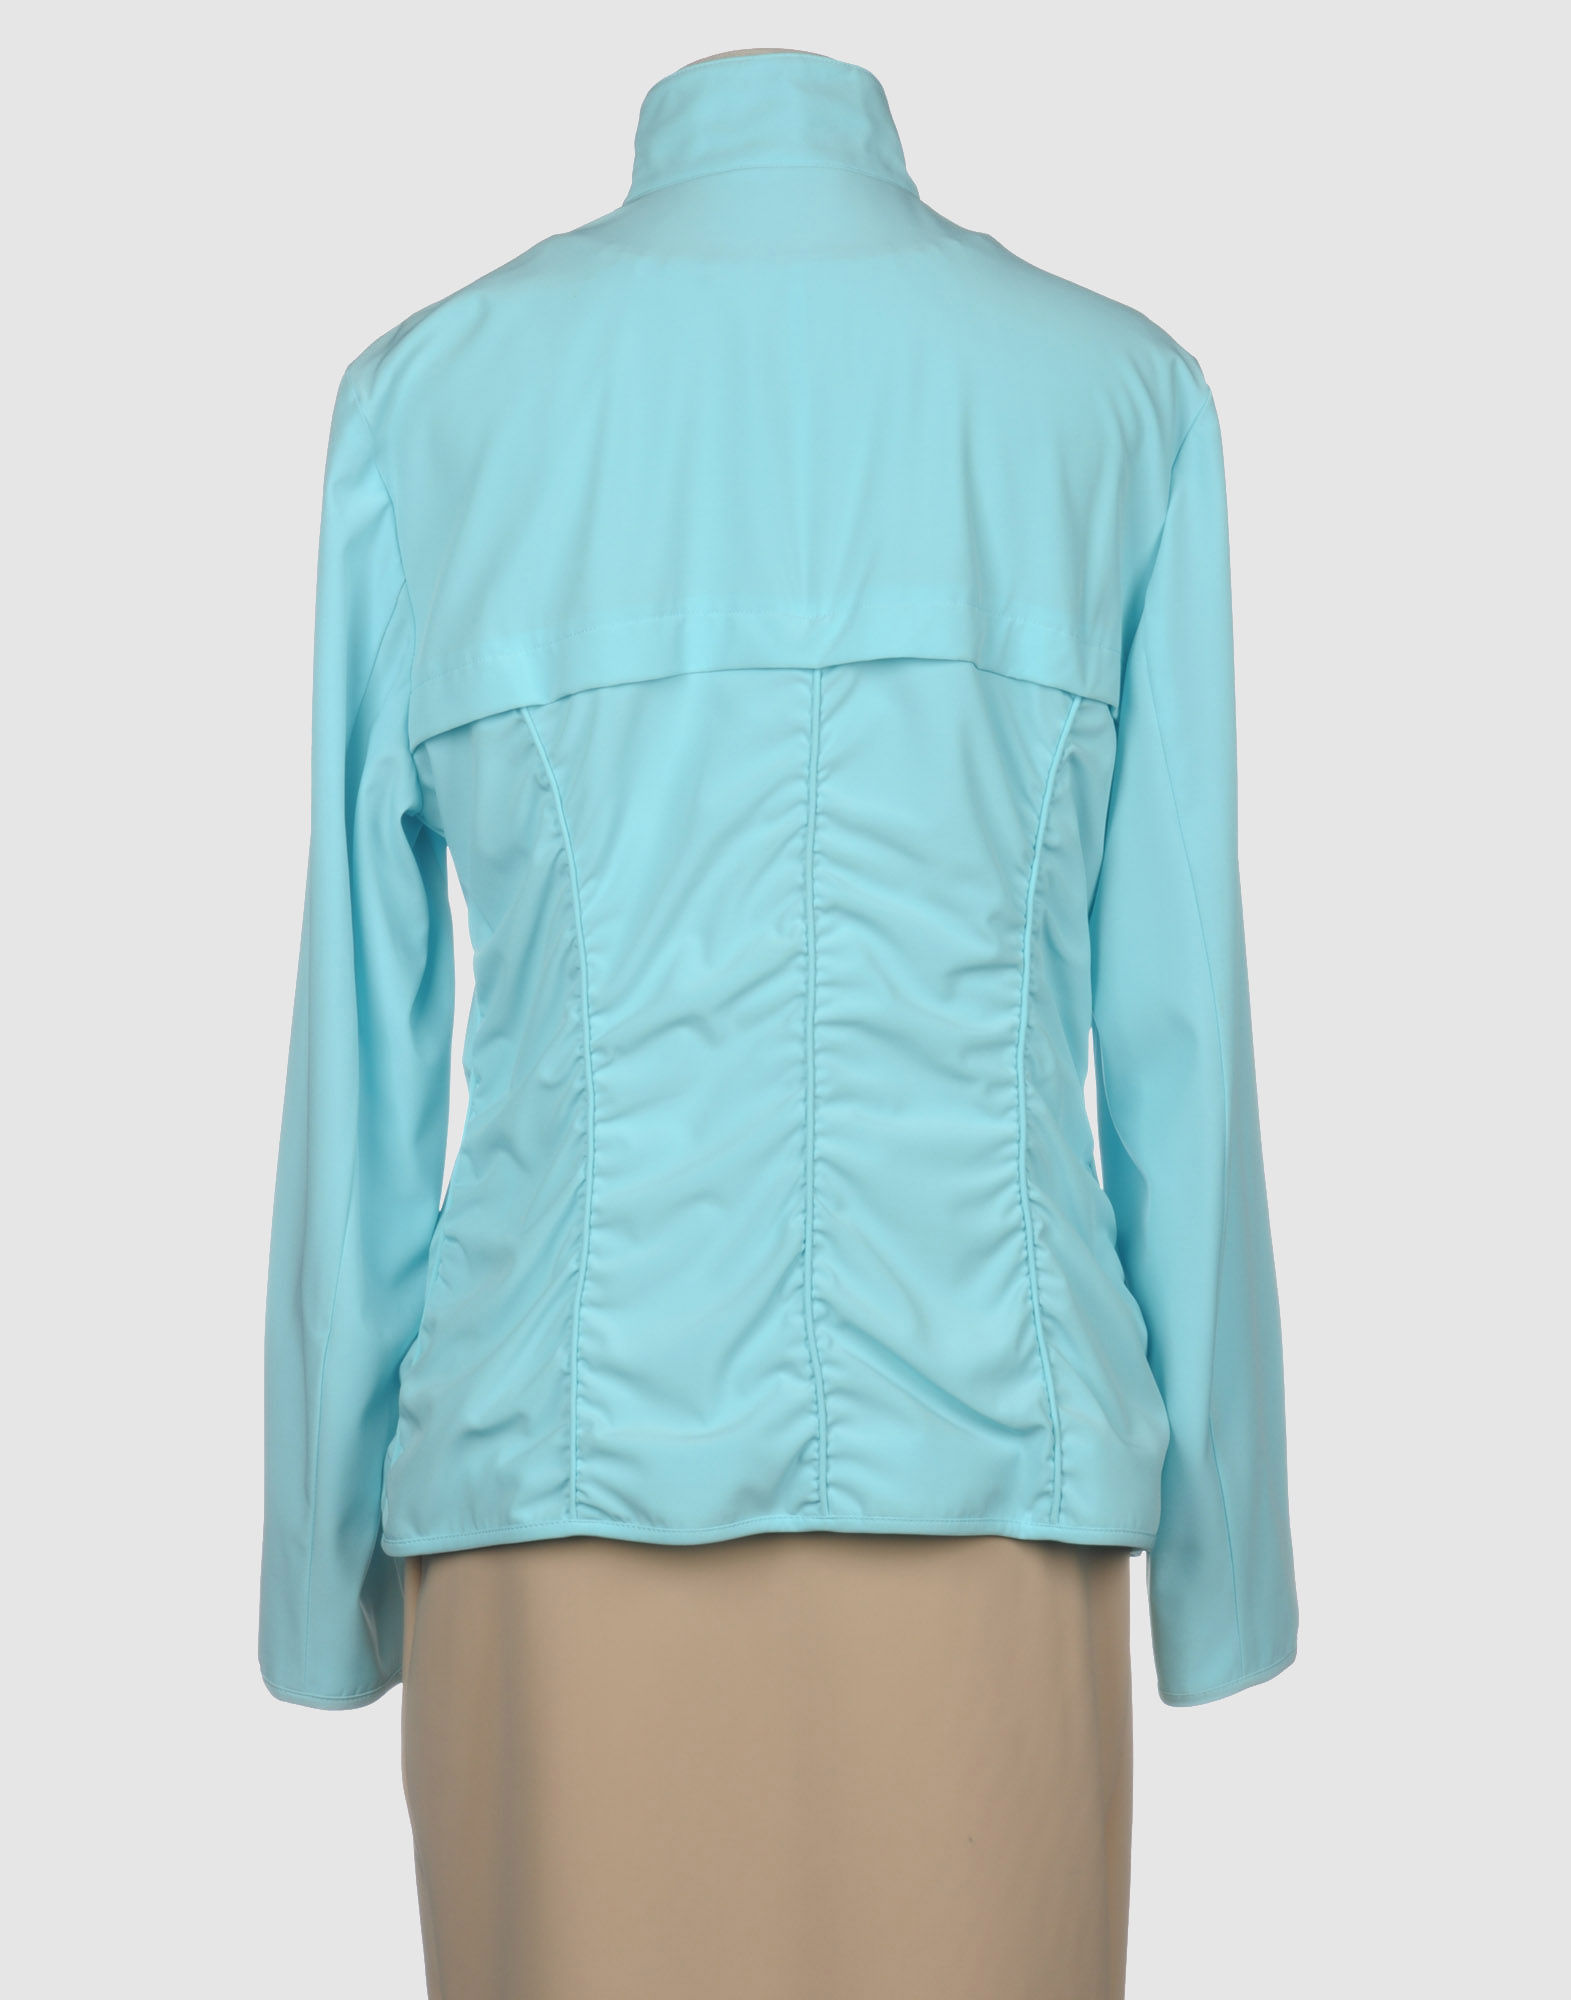 betty barclay jacket in blue turquoise lyst. Black Bedroom Furniture Sets. Home Design Ideas